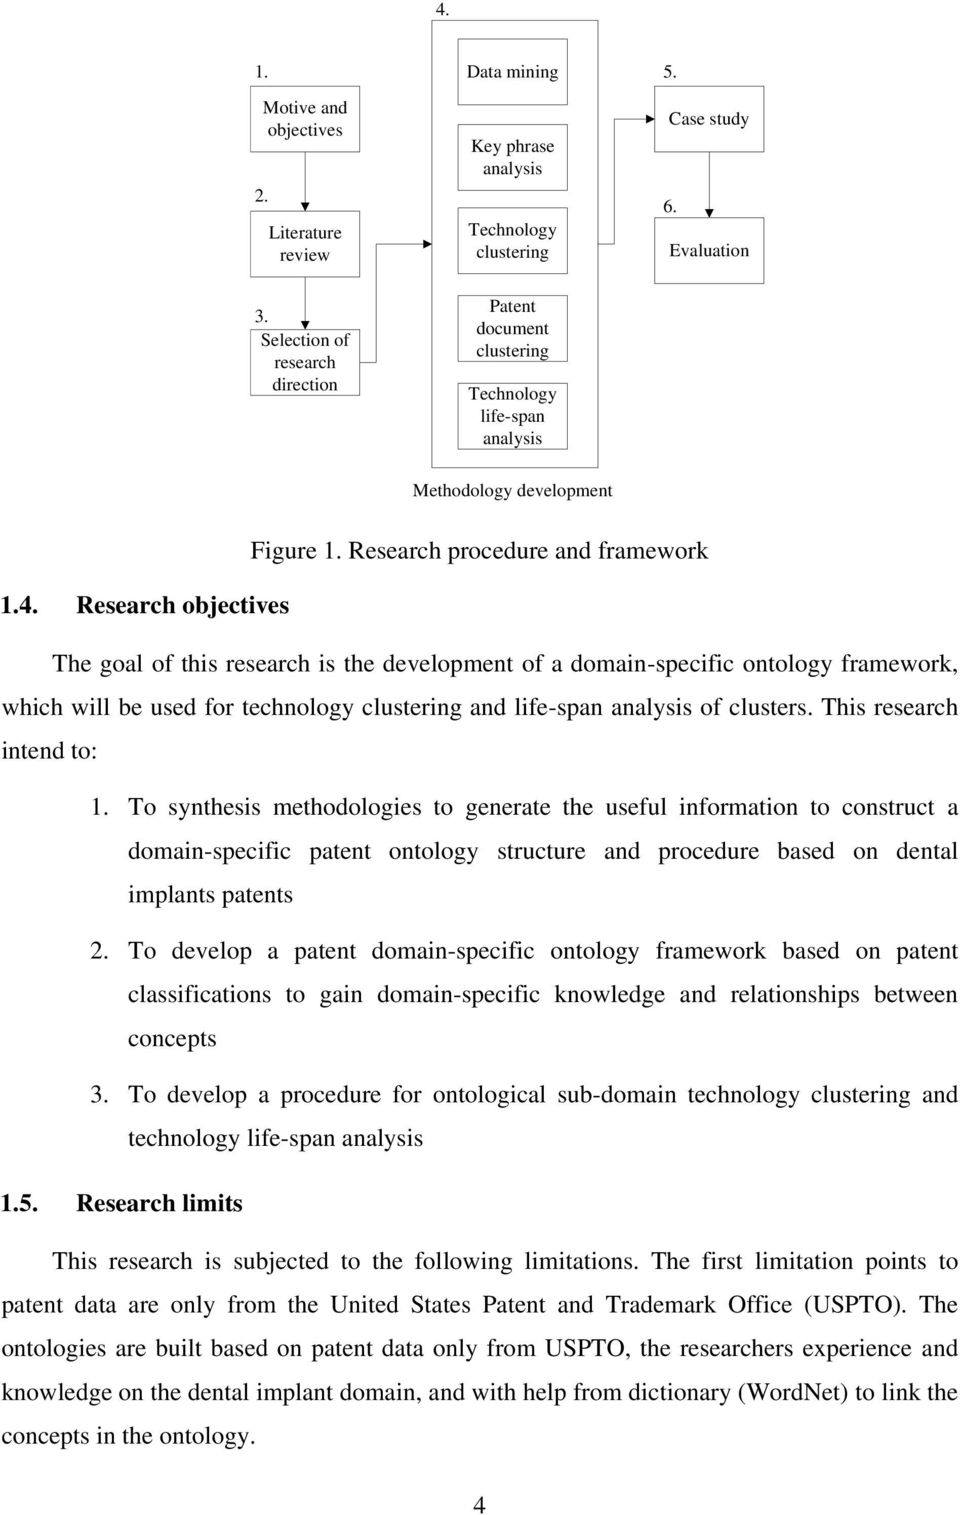 Research objectives The goal of this research is the development of a domain-specific ontology framework, which will be used for technology clustering and life-span analysis of clusters.